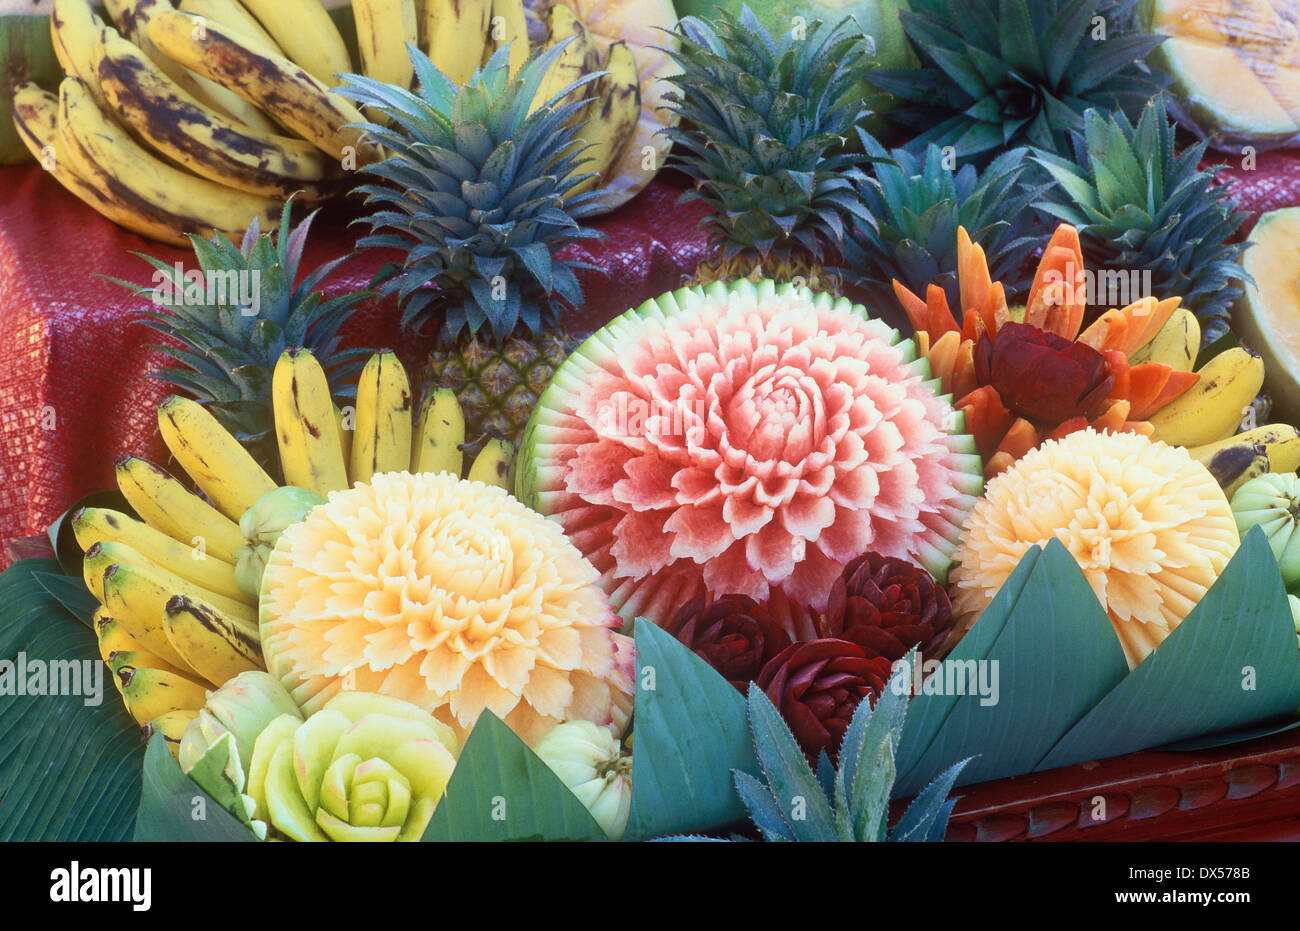 Fruit carving thailand stock photos fruit carving thailand stock